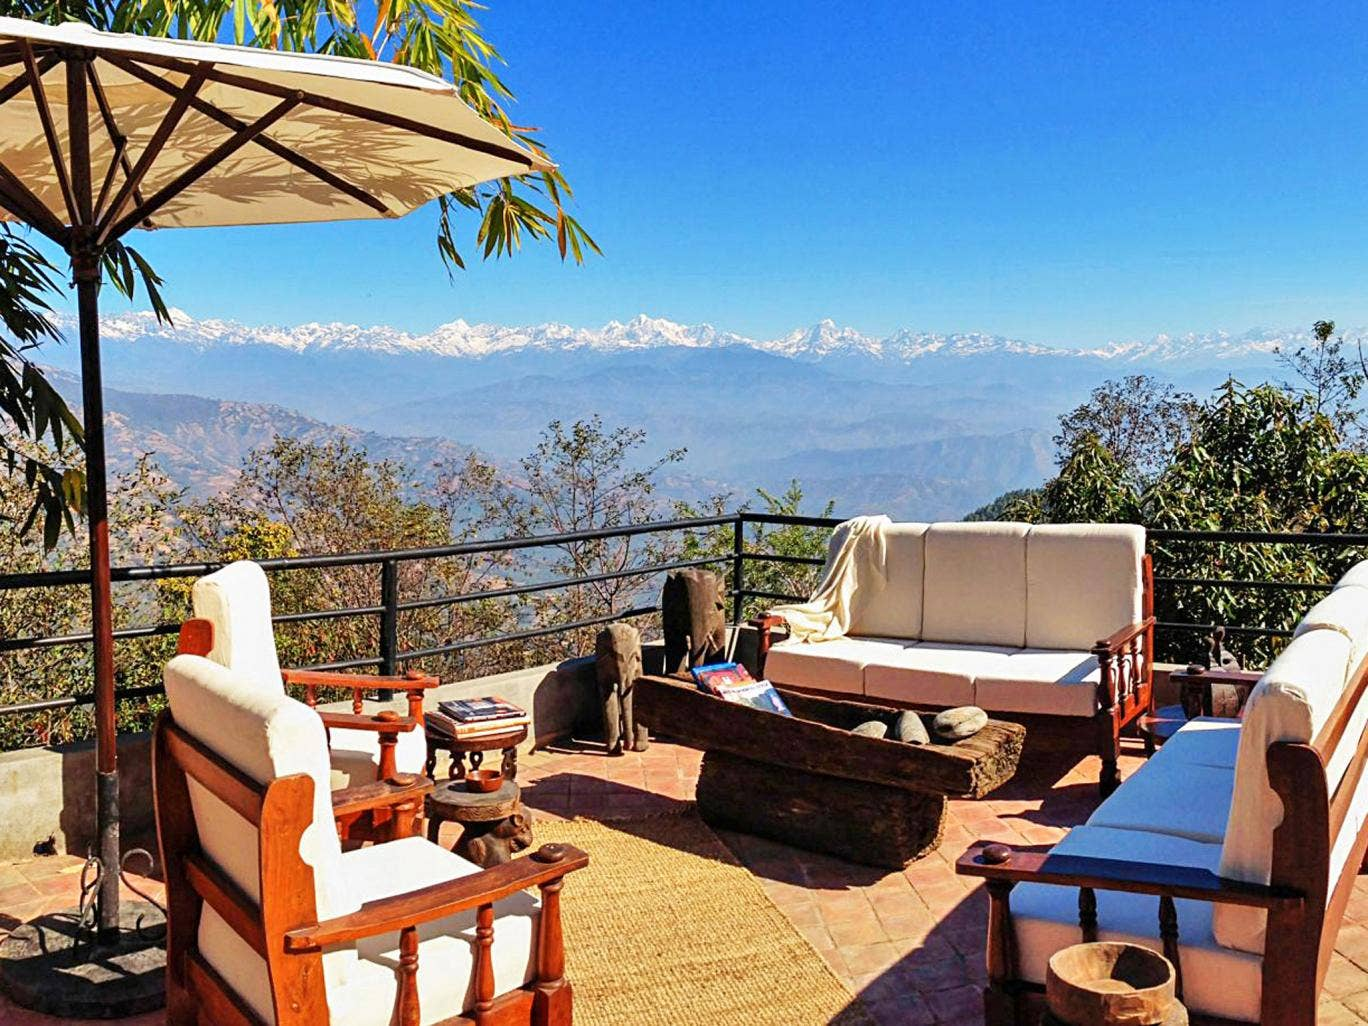 Dwarika's Resort, Nepal: In the 1950s, conservationist Dwarika Das Shrestha took over a collection of heritage houses in Kathmandu and spent 30 years turning them into a five-star hotel.